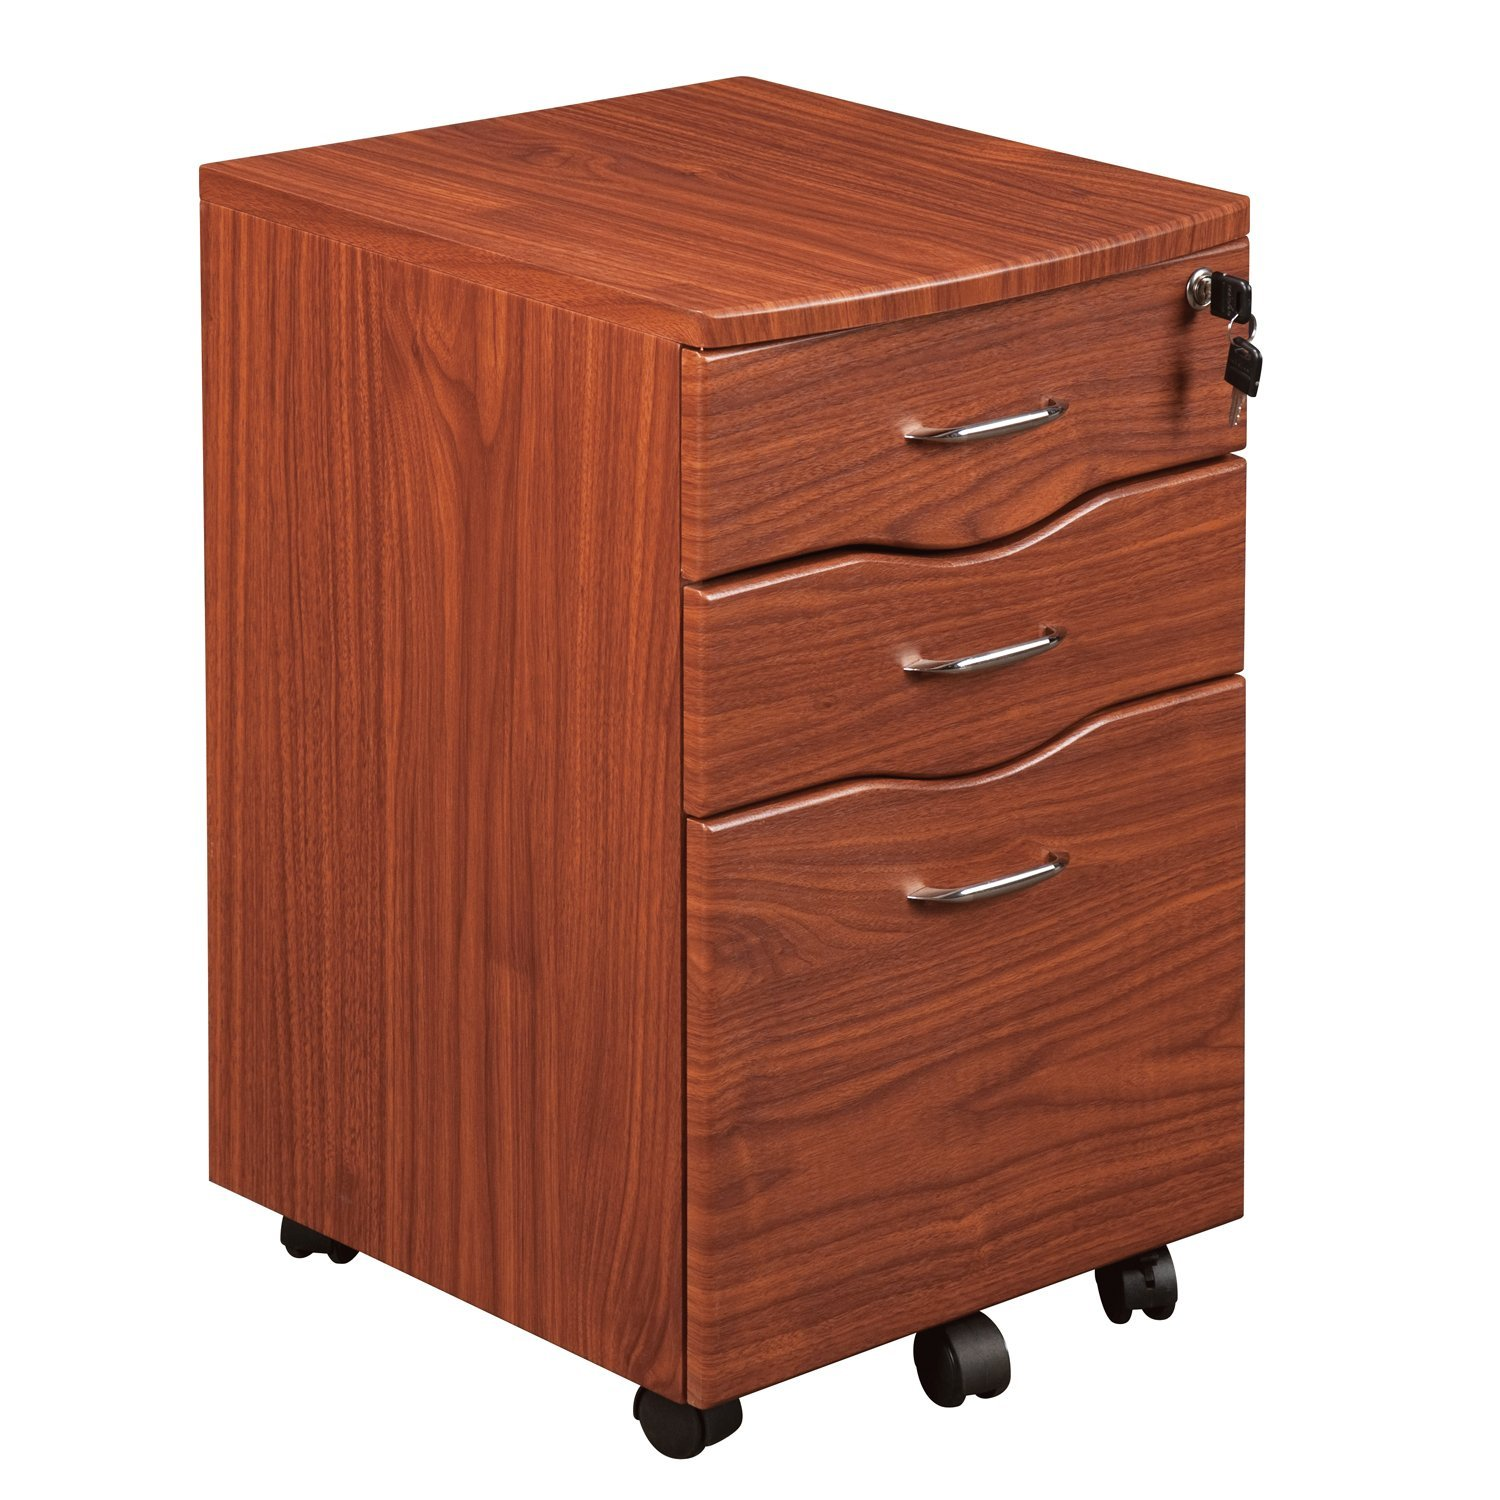 Techni Mobili Rolling Storage and File Cabinet, Mahogany by Techni Mobili